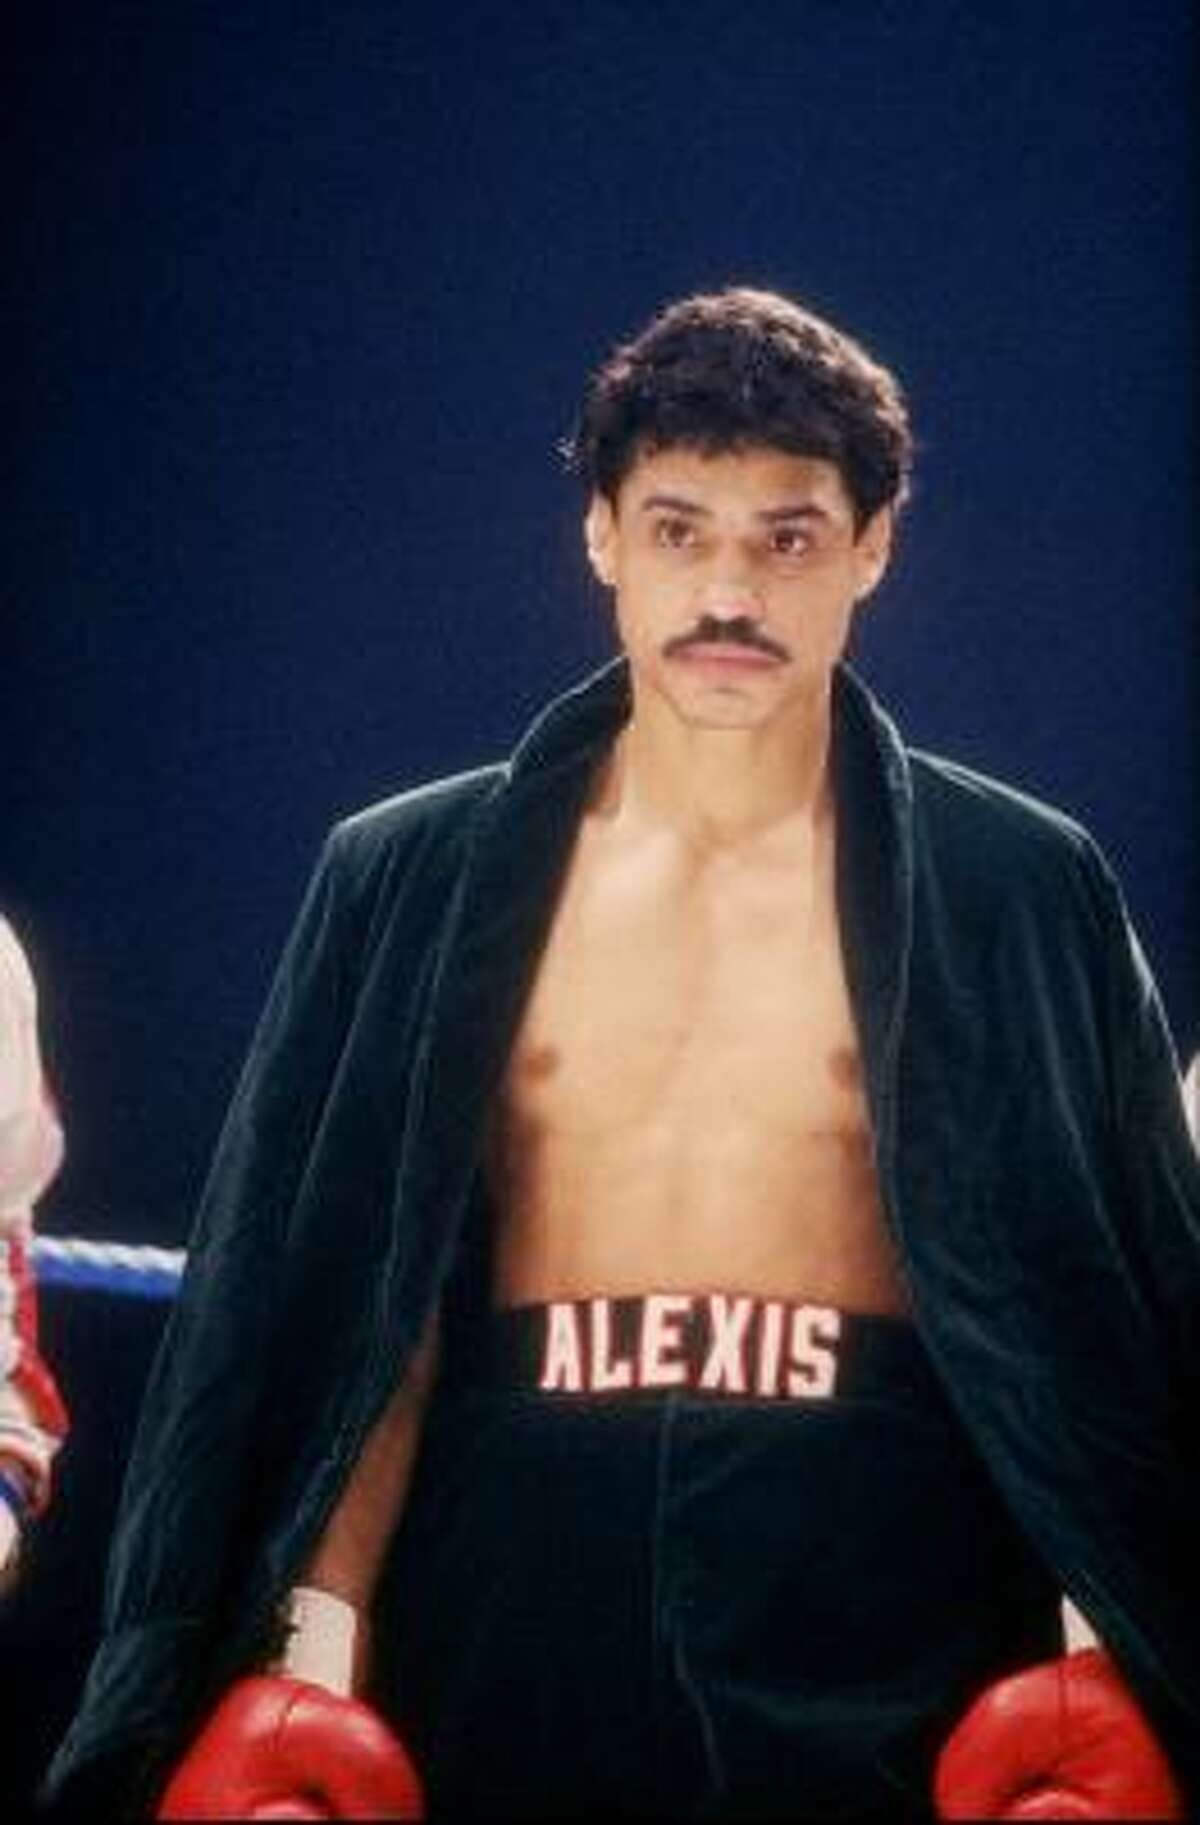 Alexis Argüello, circa 1985. He turned pro in 1968 and won his first world title by knocking out Ruben Olivares for the featherweight crown in 1974 and retired in 1995 with a record of 82-8 with 65 knockouts.